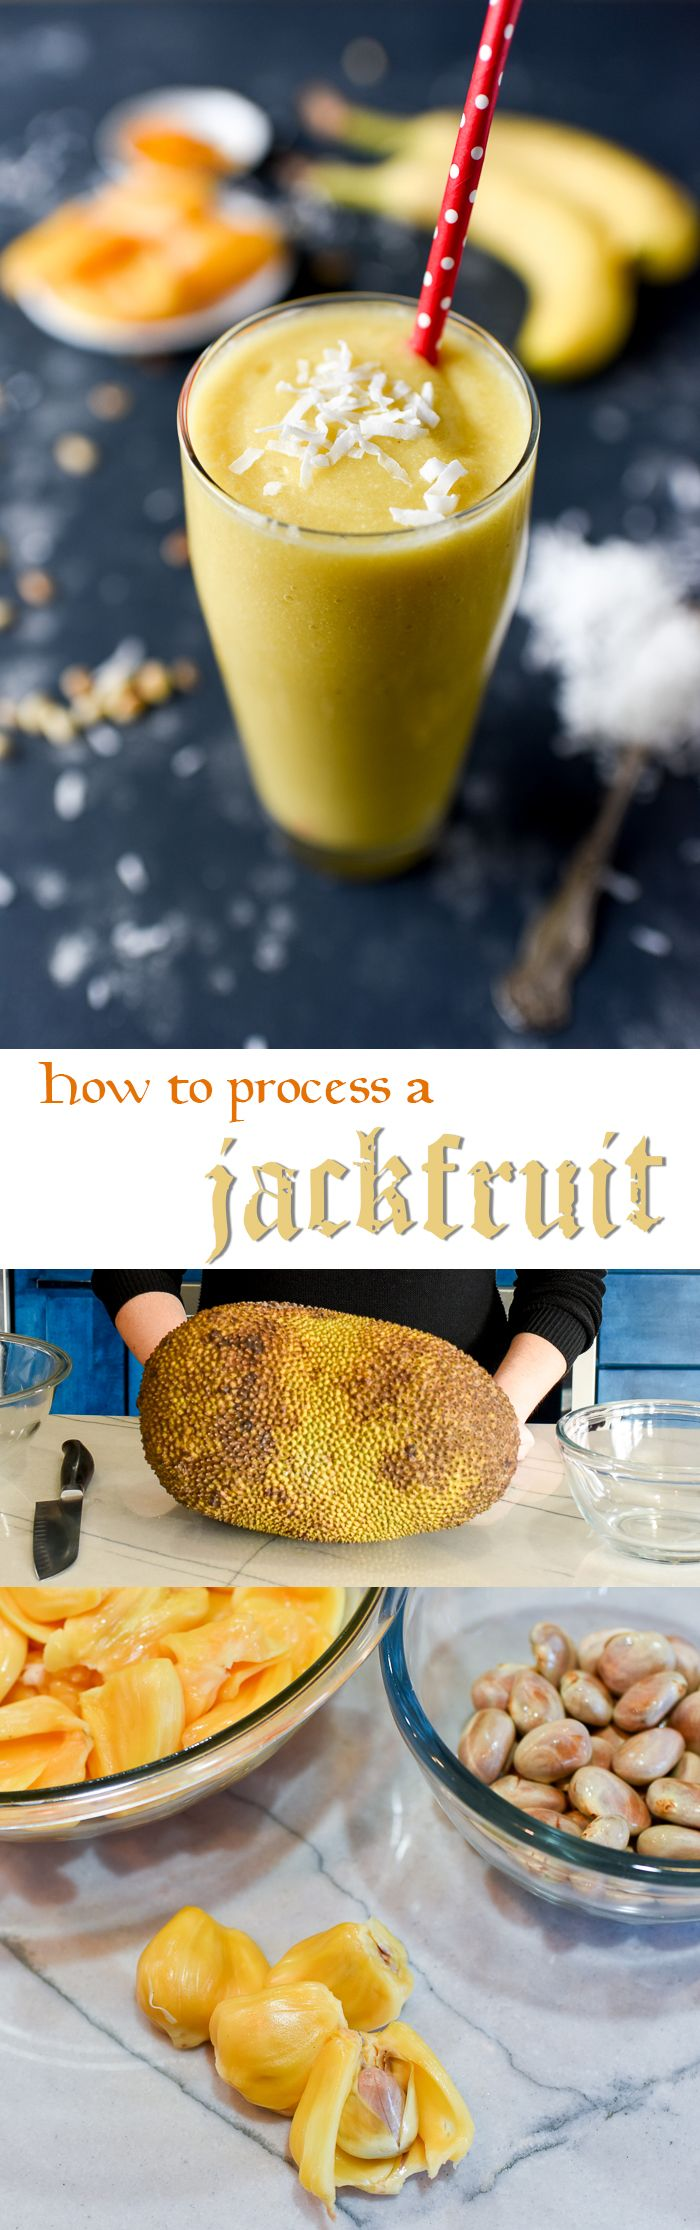 How to process a fresh, ripe jackfruit, and a tropical smoothie recipe!